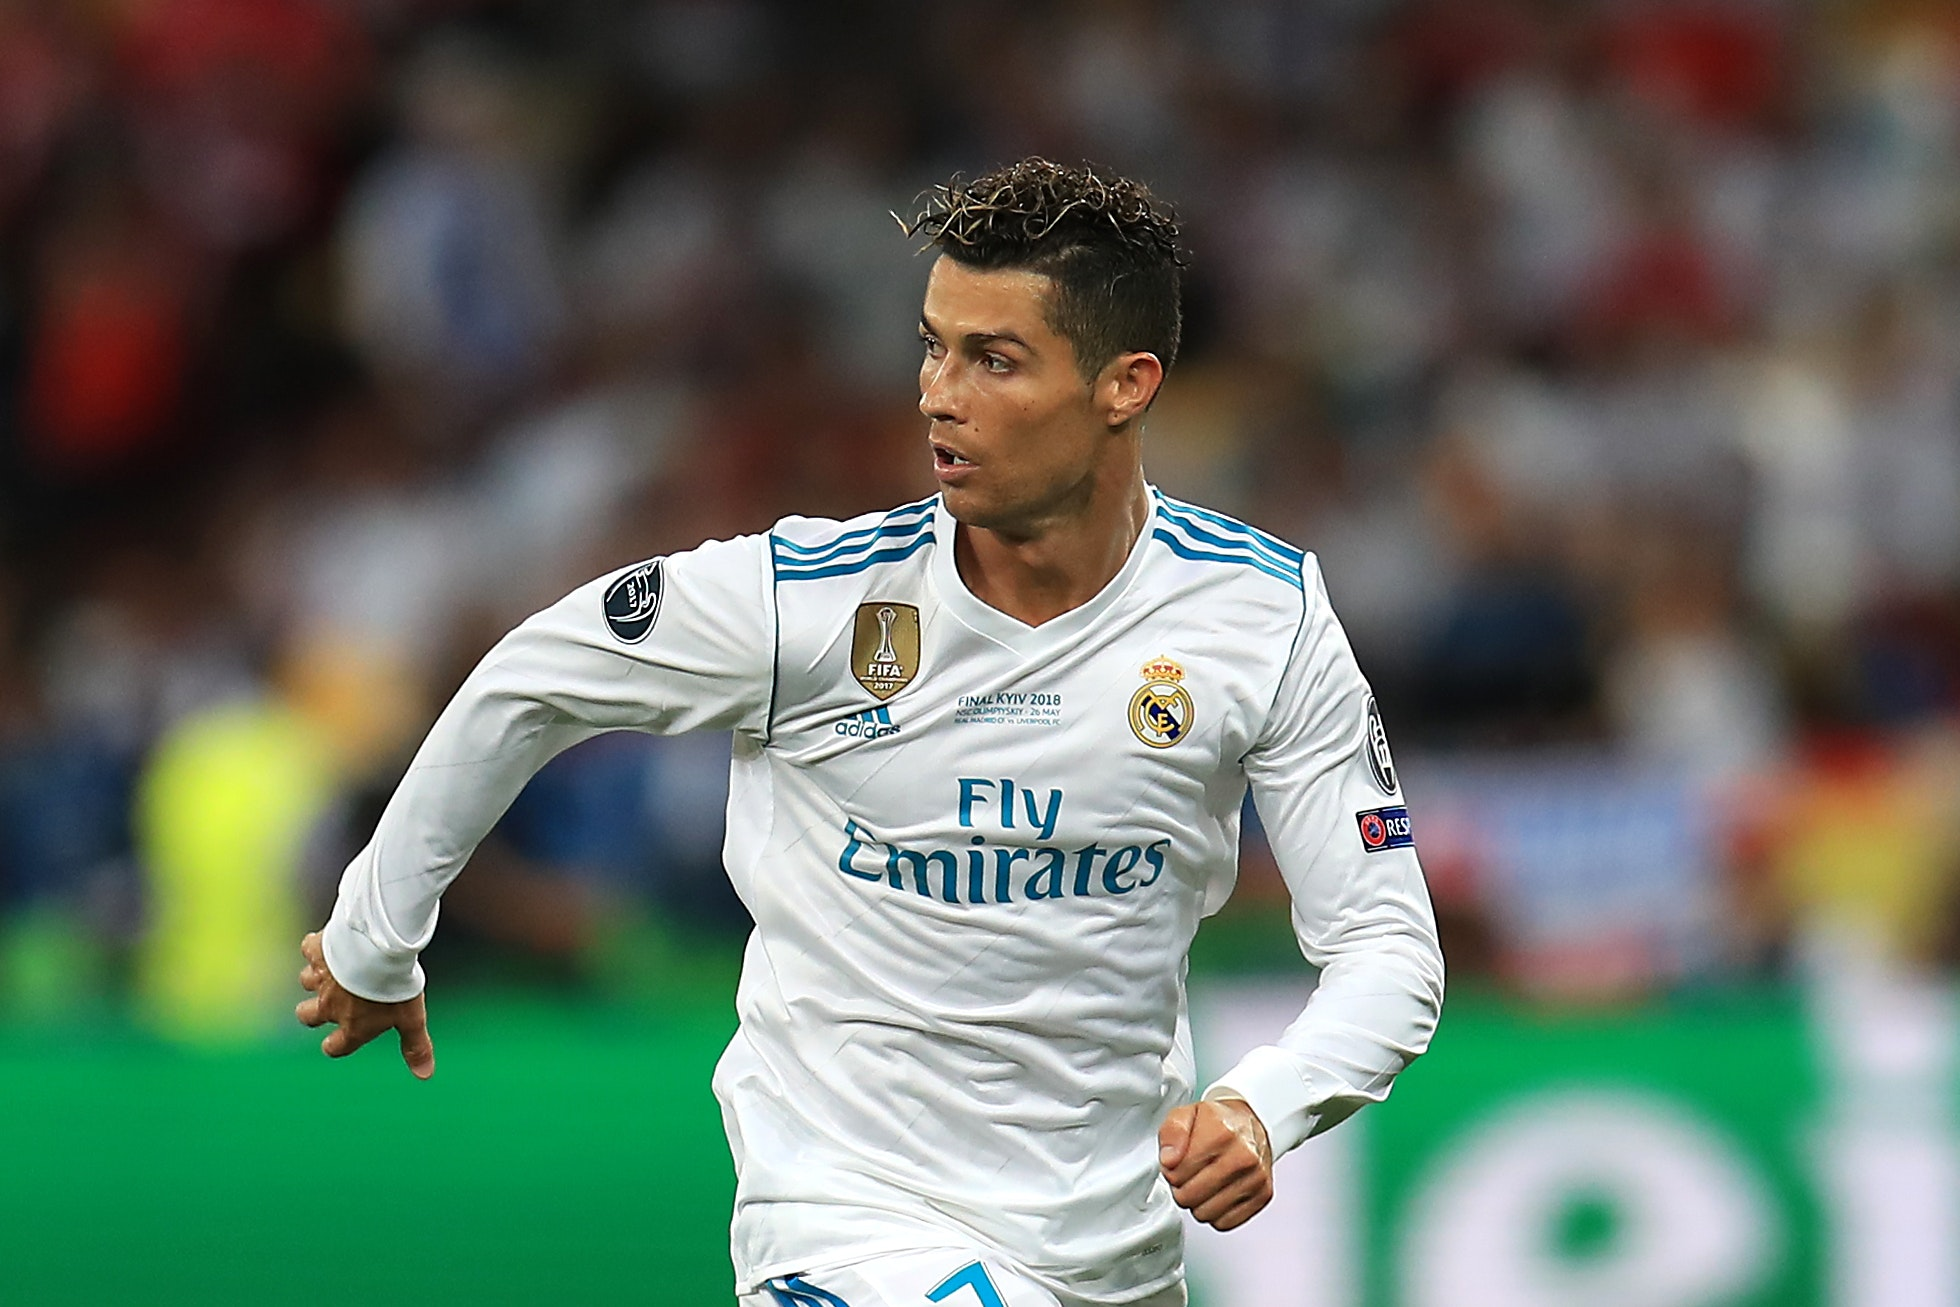 Cristiano Ronaldo has denied allegations of rape